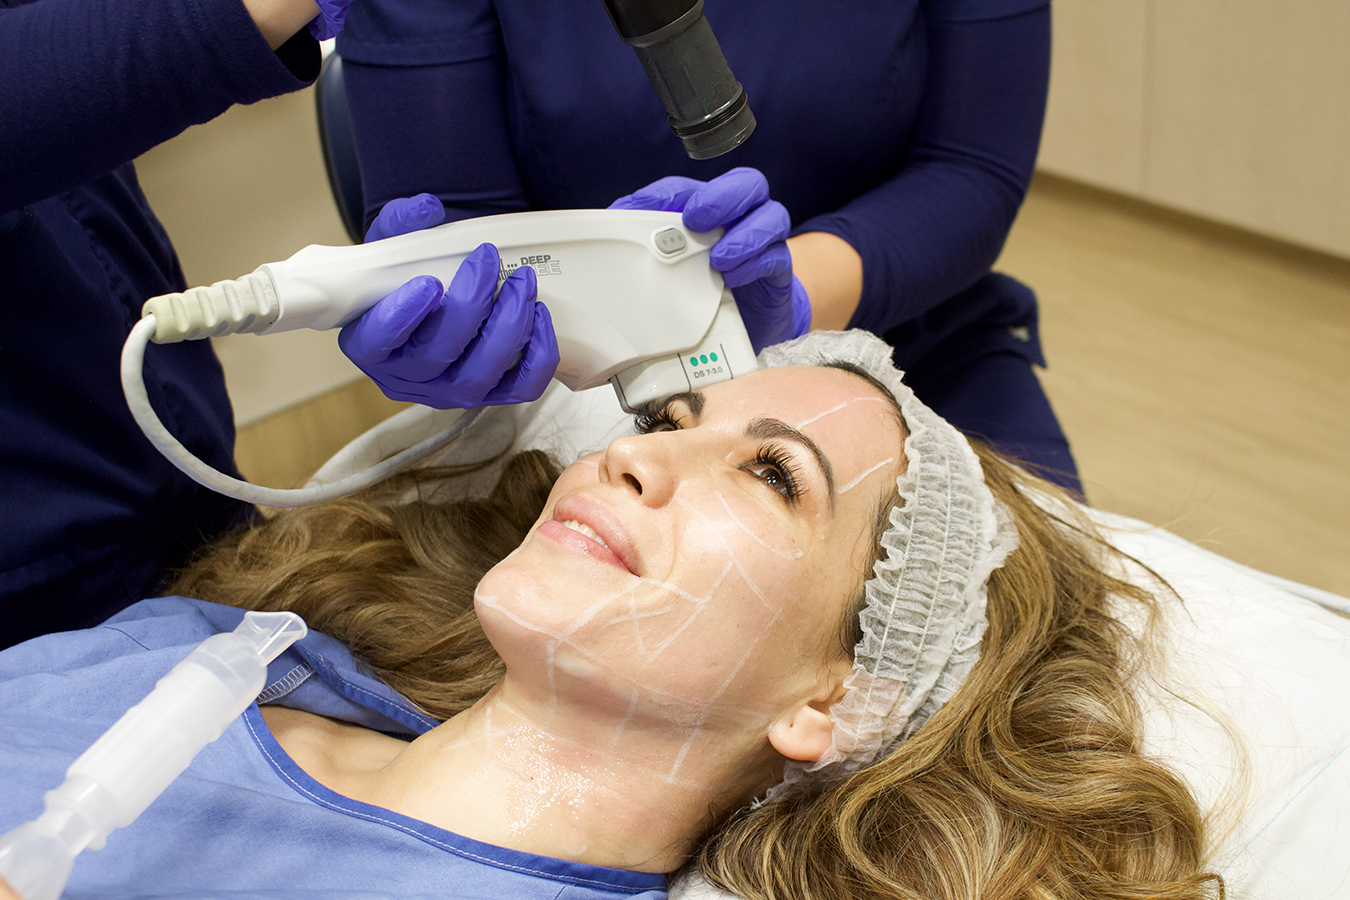 woman getting a skin tightening treatment called Ultherapy